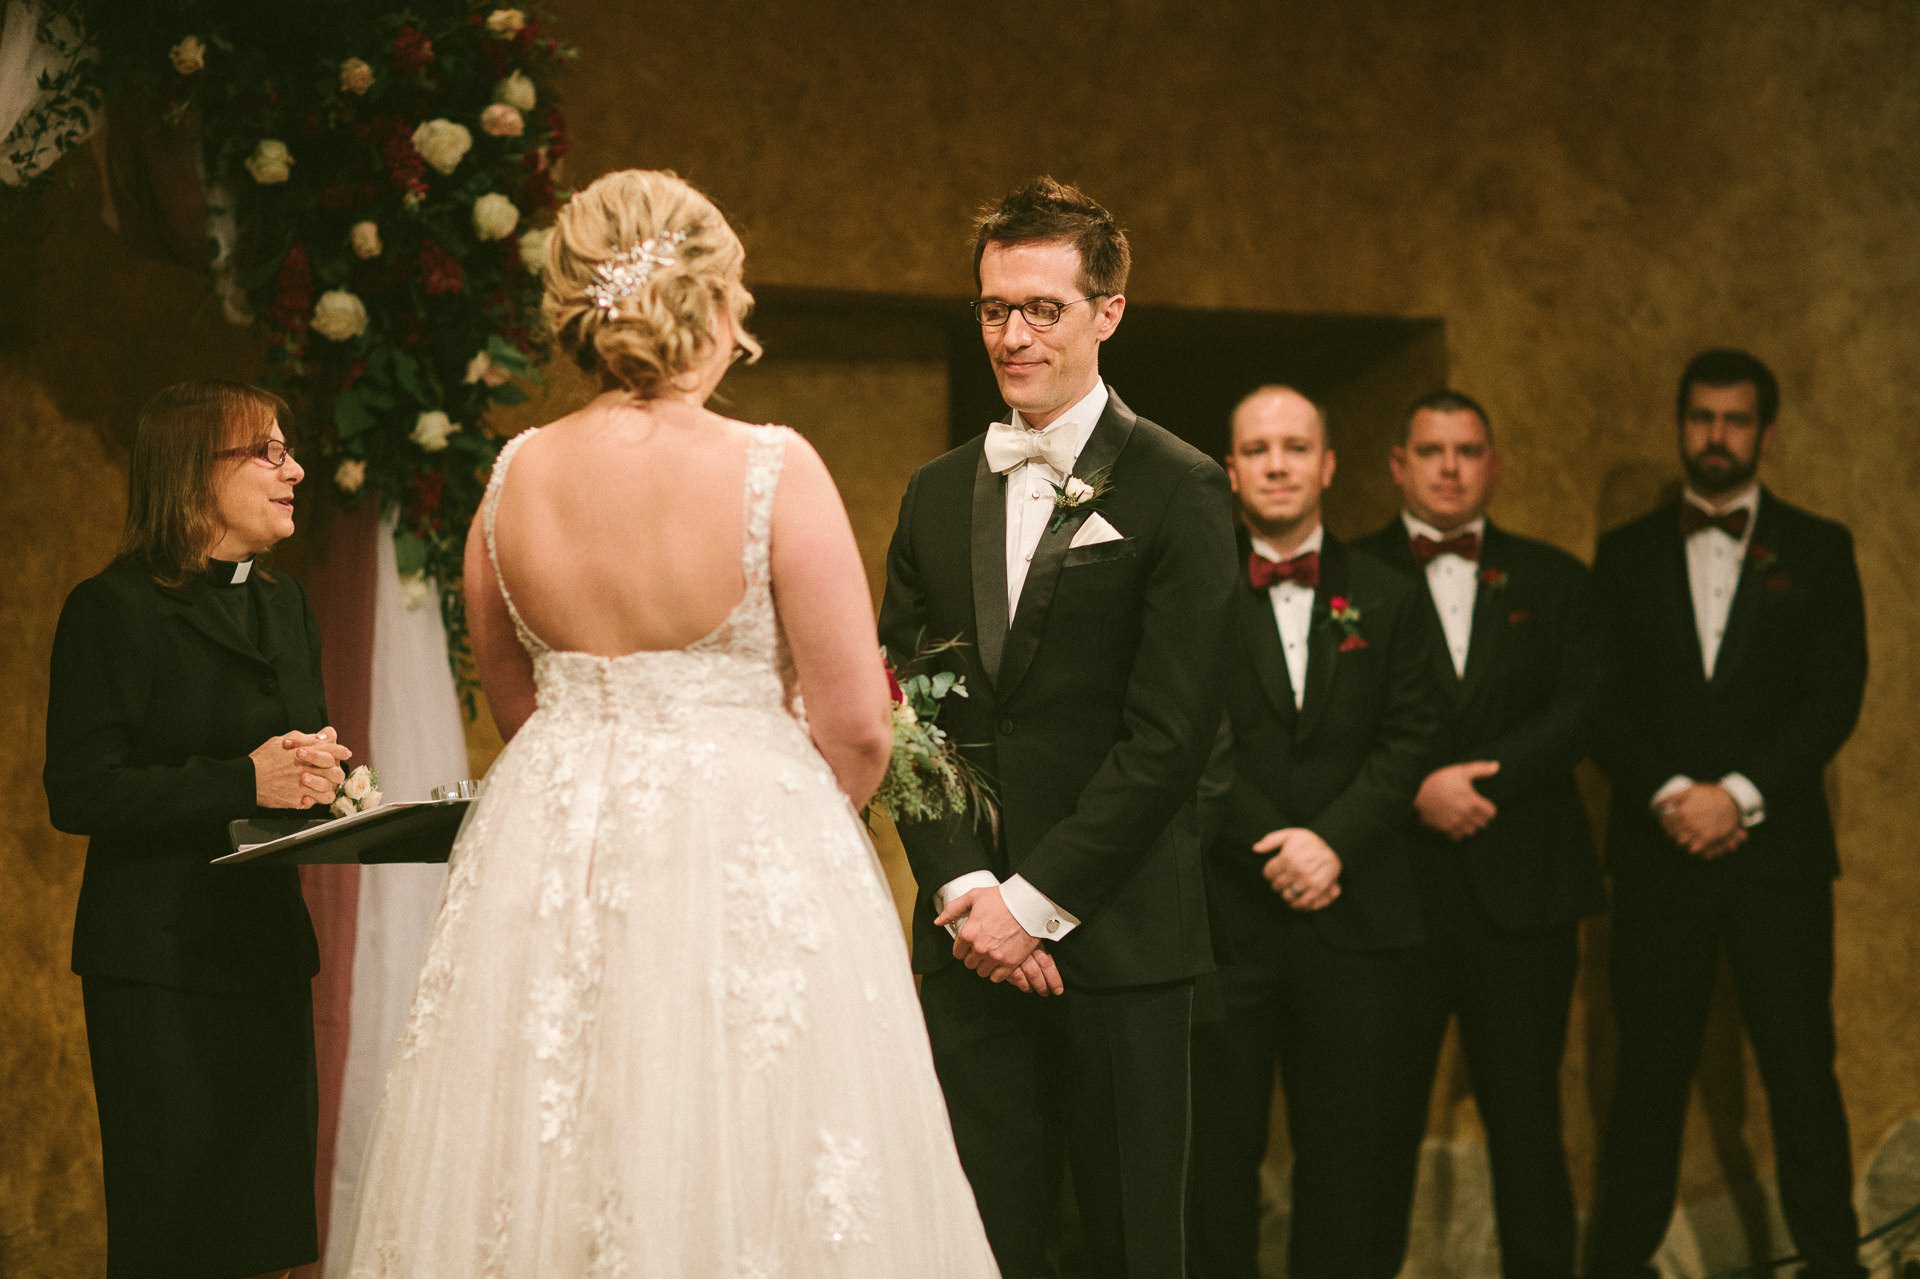 Cibreo Privato Wedding at Playhouse Square in Cleveland 1 46.jpg